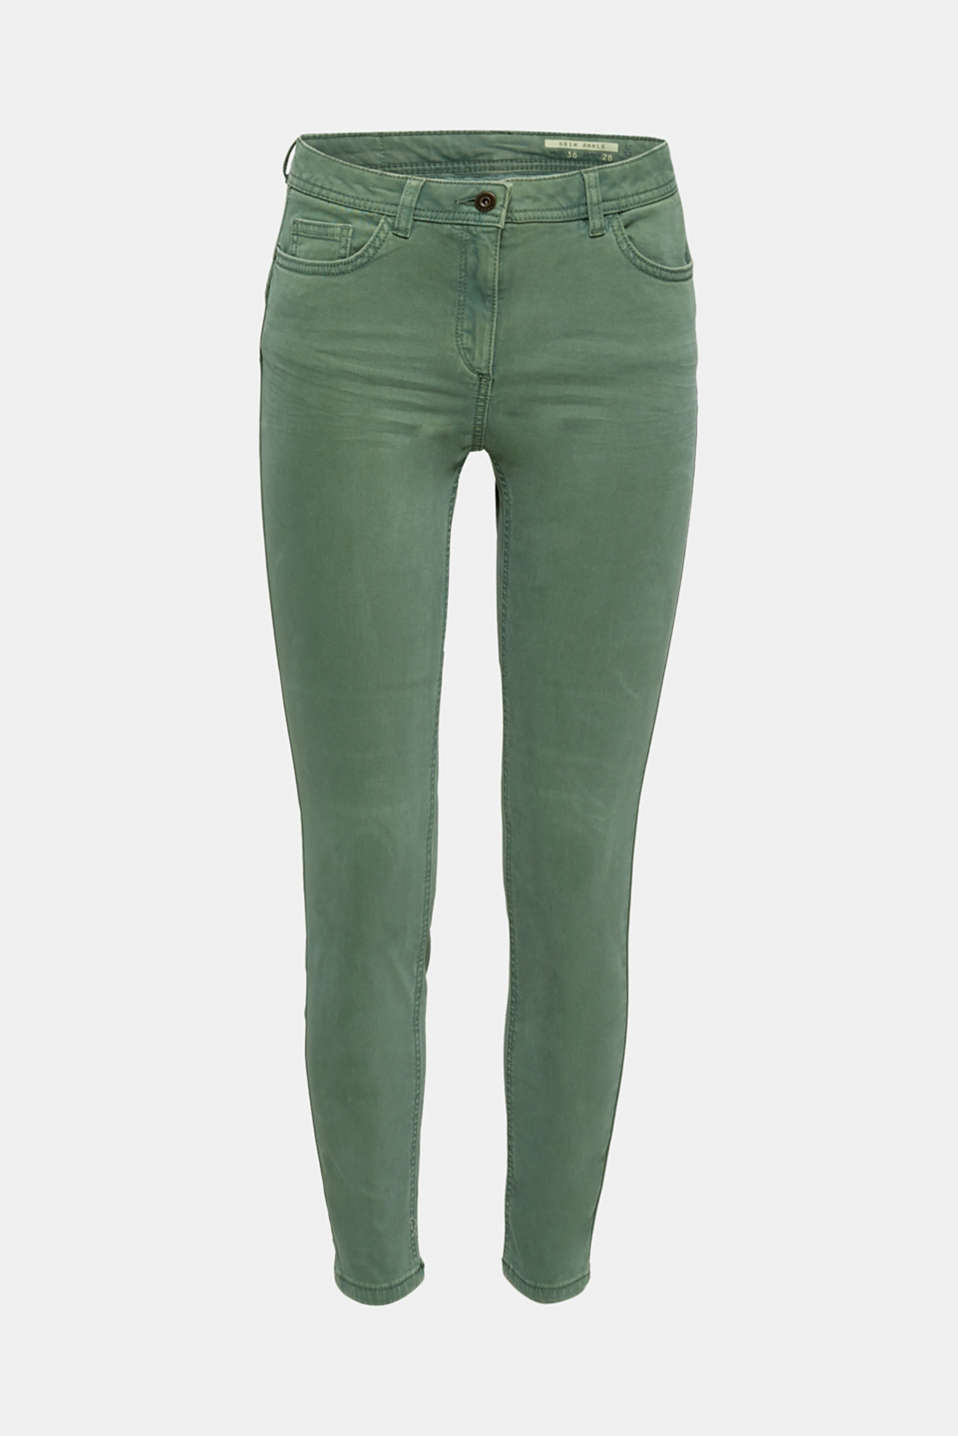 Ankle-length trousers in a garment-washed finish with organic cotton, KHAKI GREEN, detail image number 7